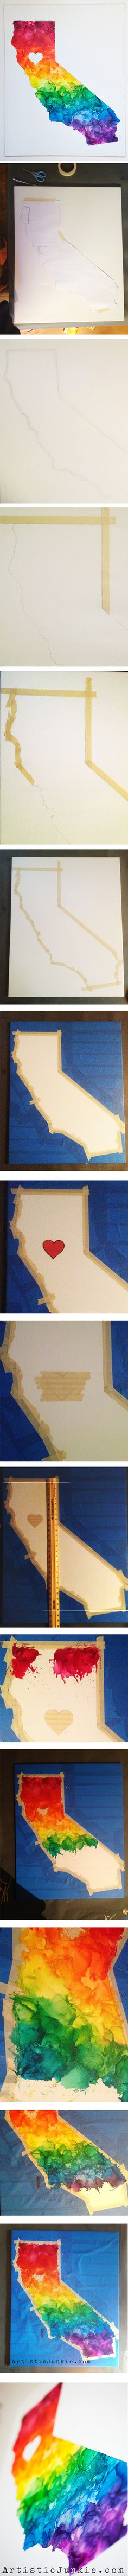 California Love- State Shaped Crayon Art. Full DIY tutorial on how to make with any state!